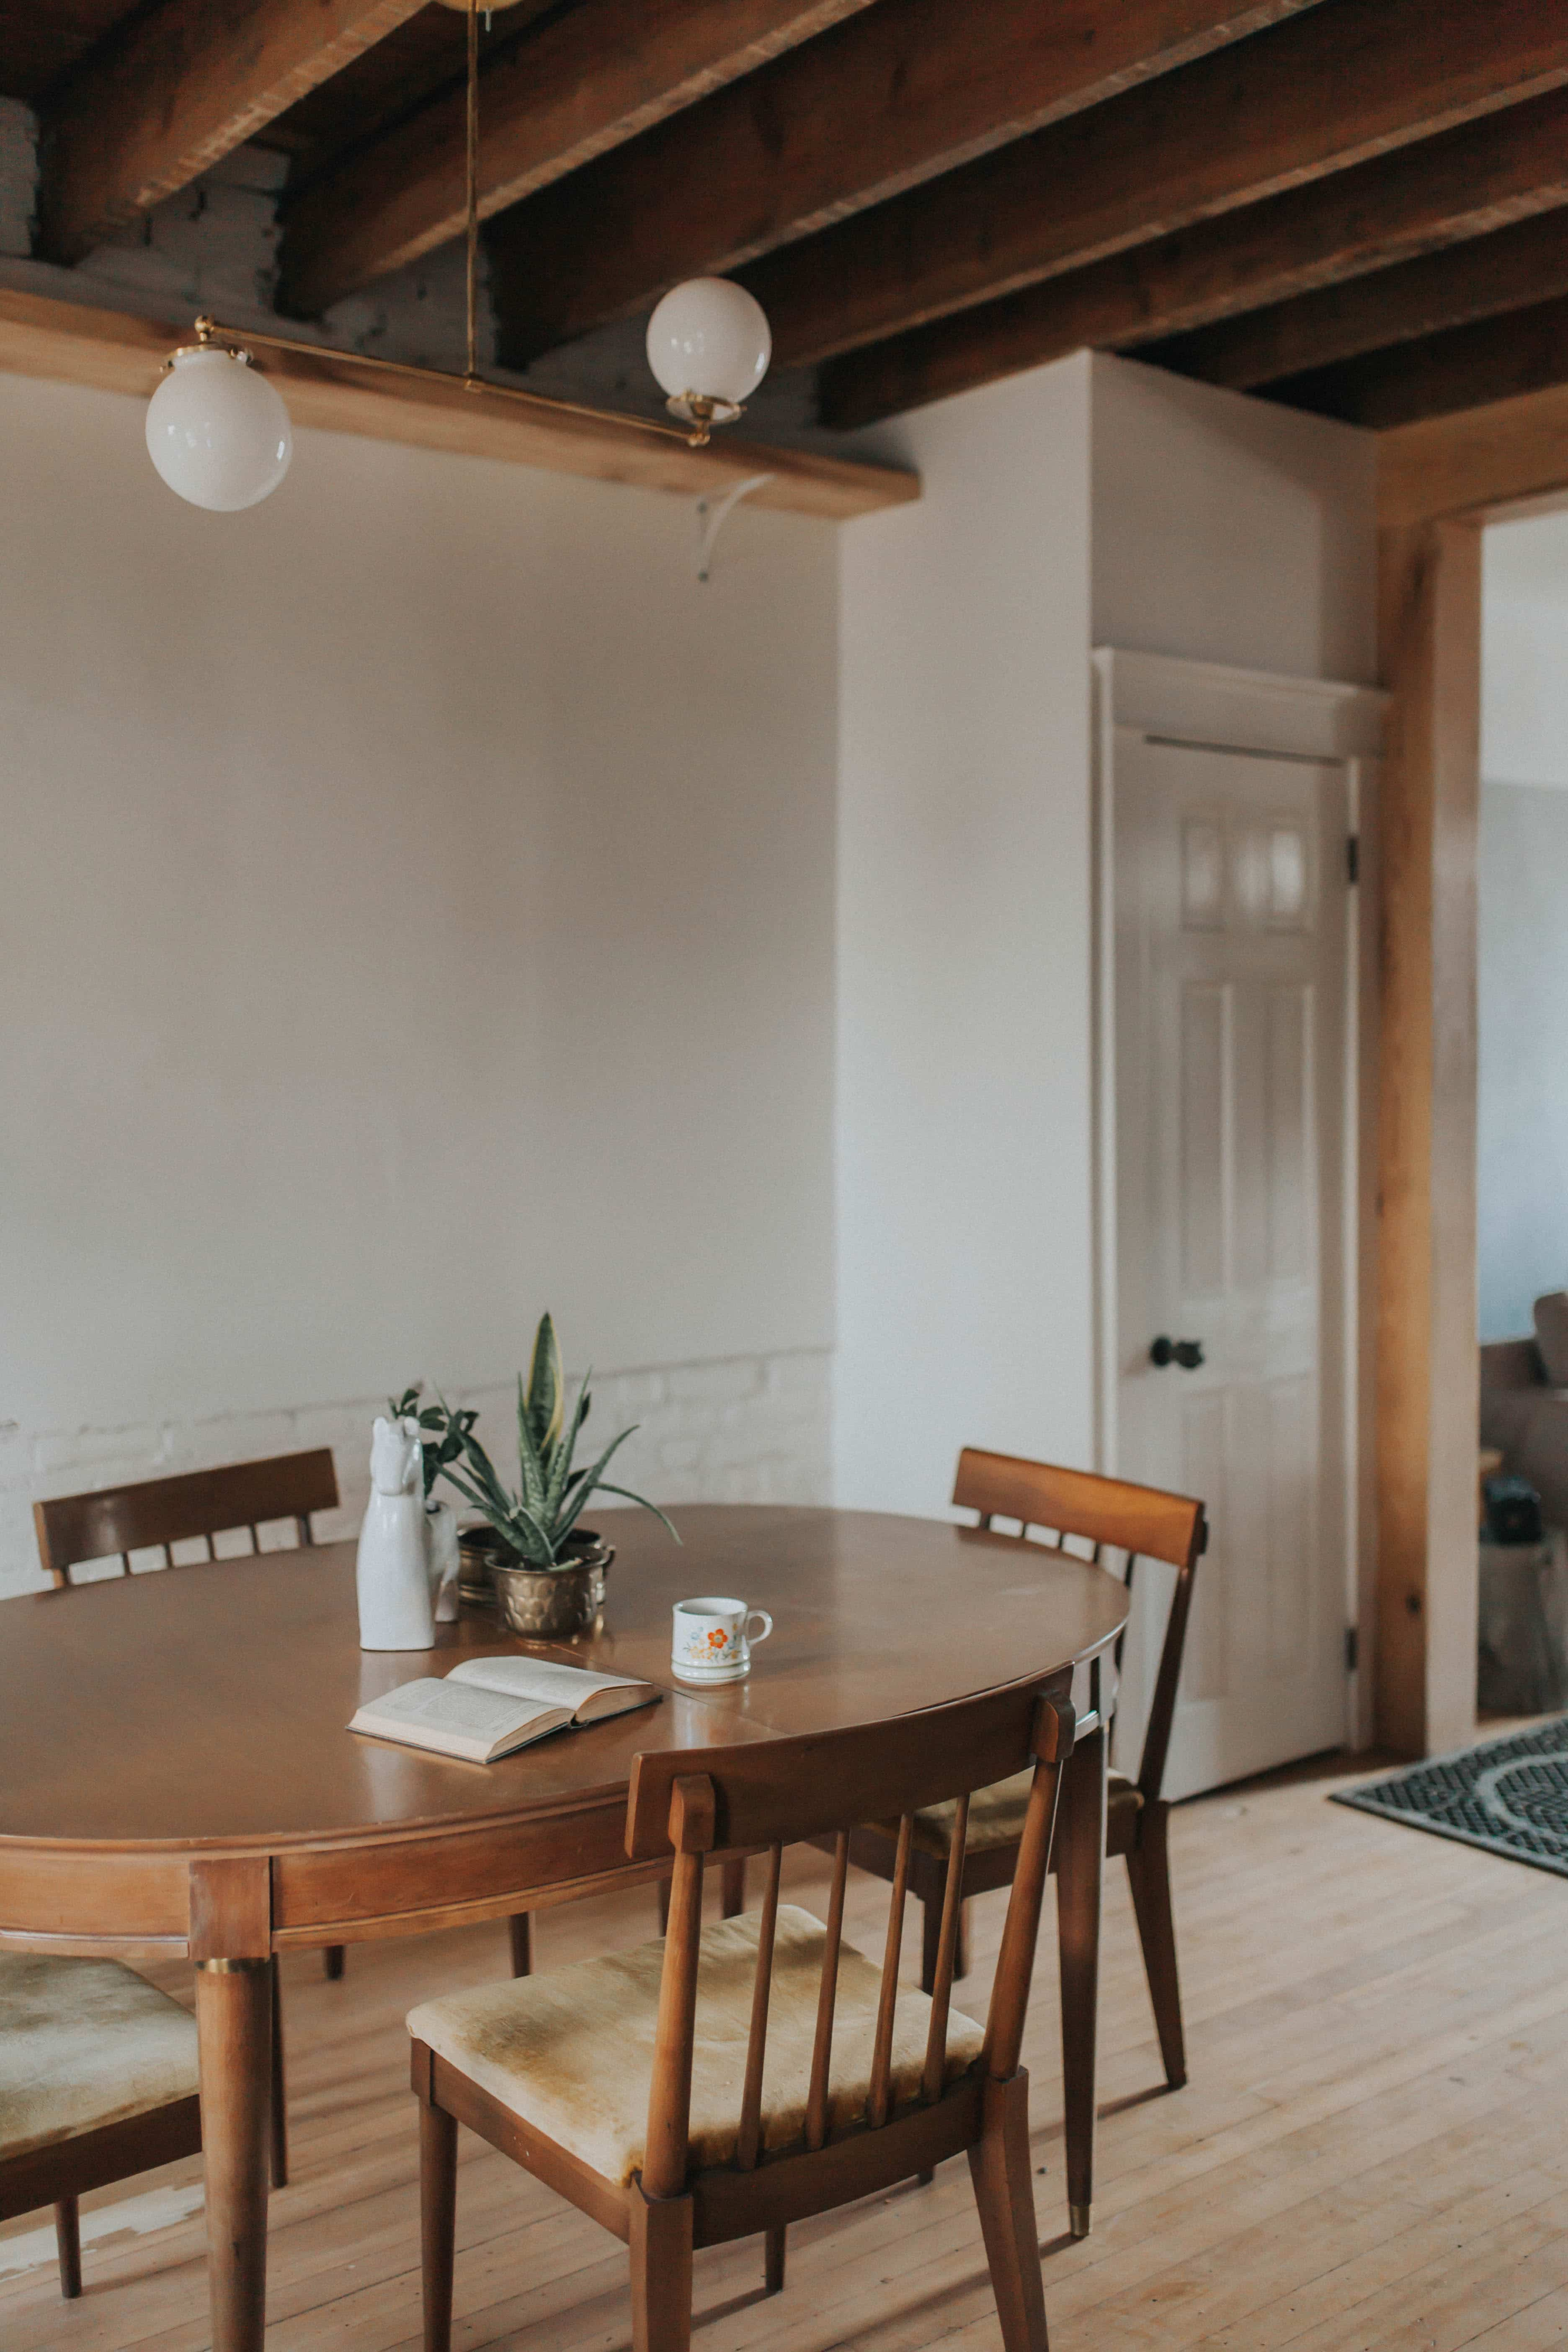 Vintage table and chairs in staged home